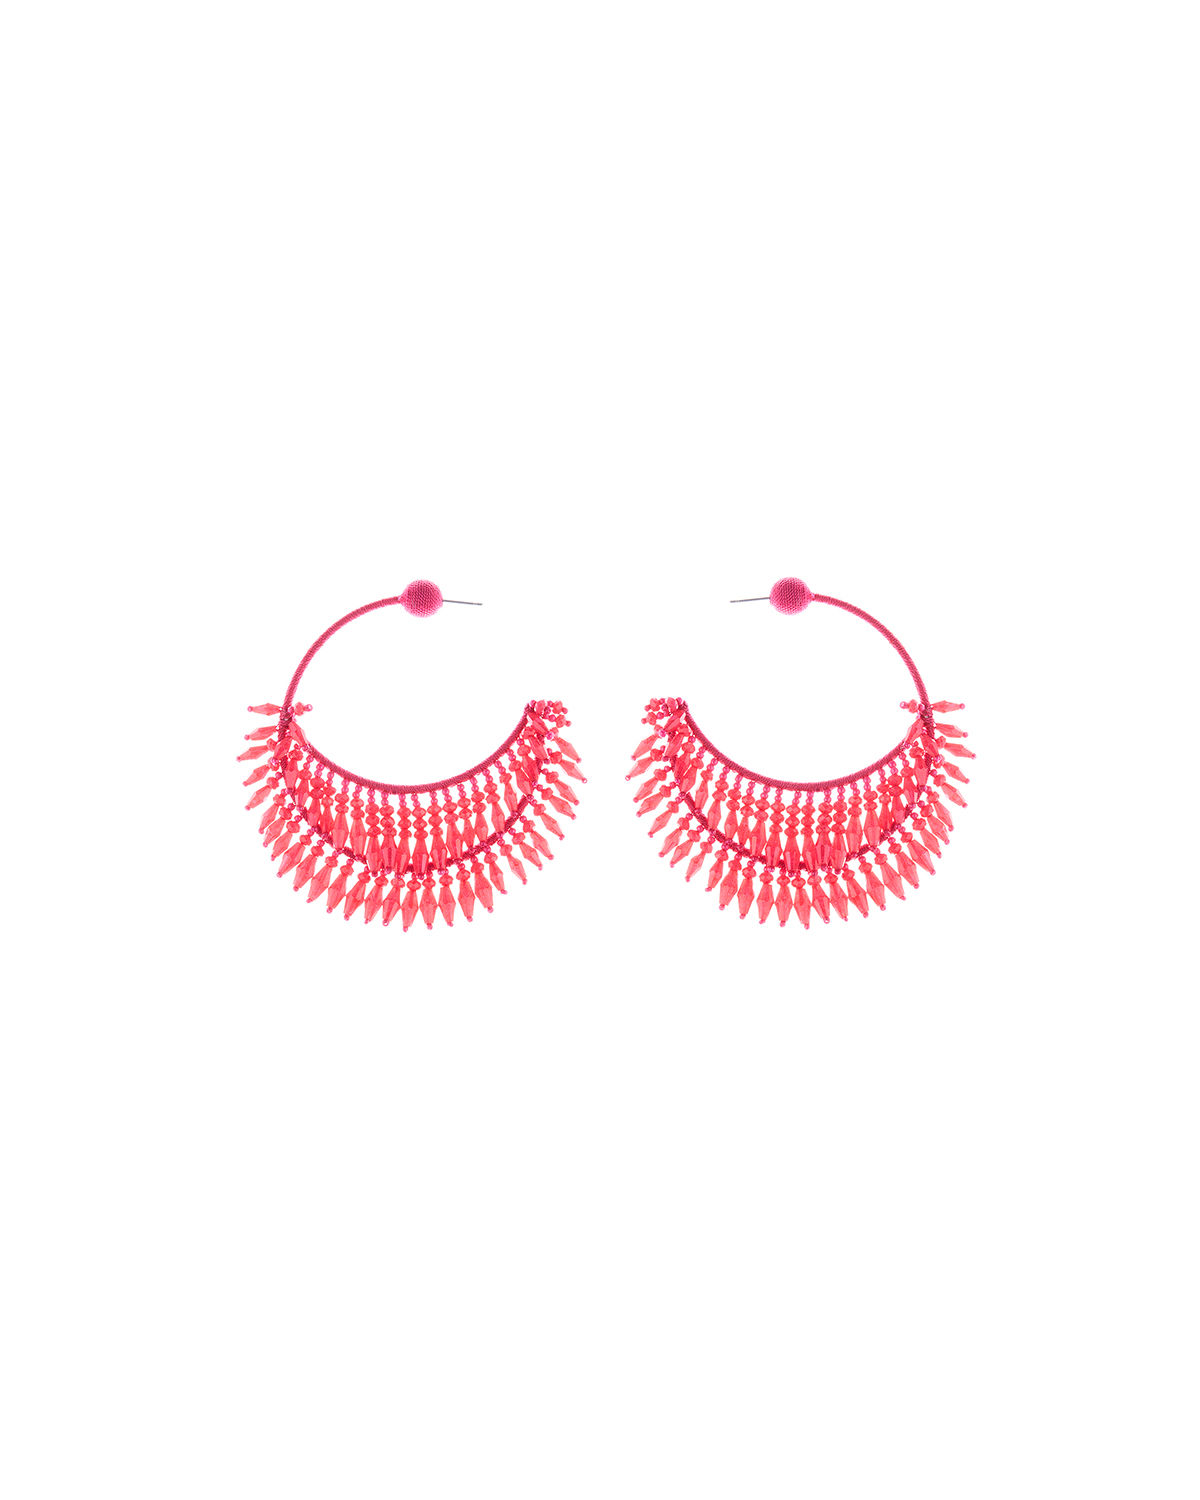 Oscar De La Renta Accessories BEADED HALF-HOOP EARRINGS